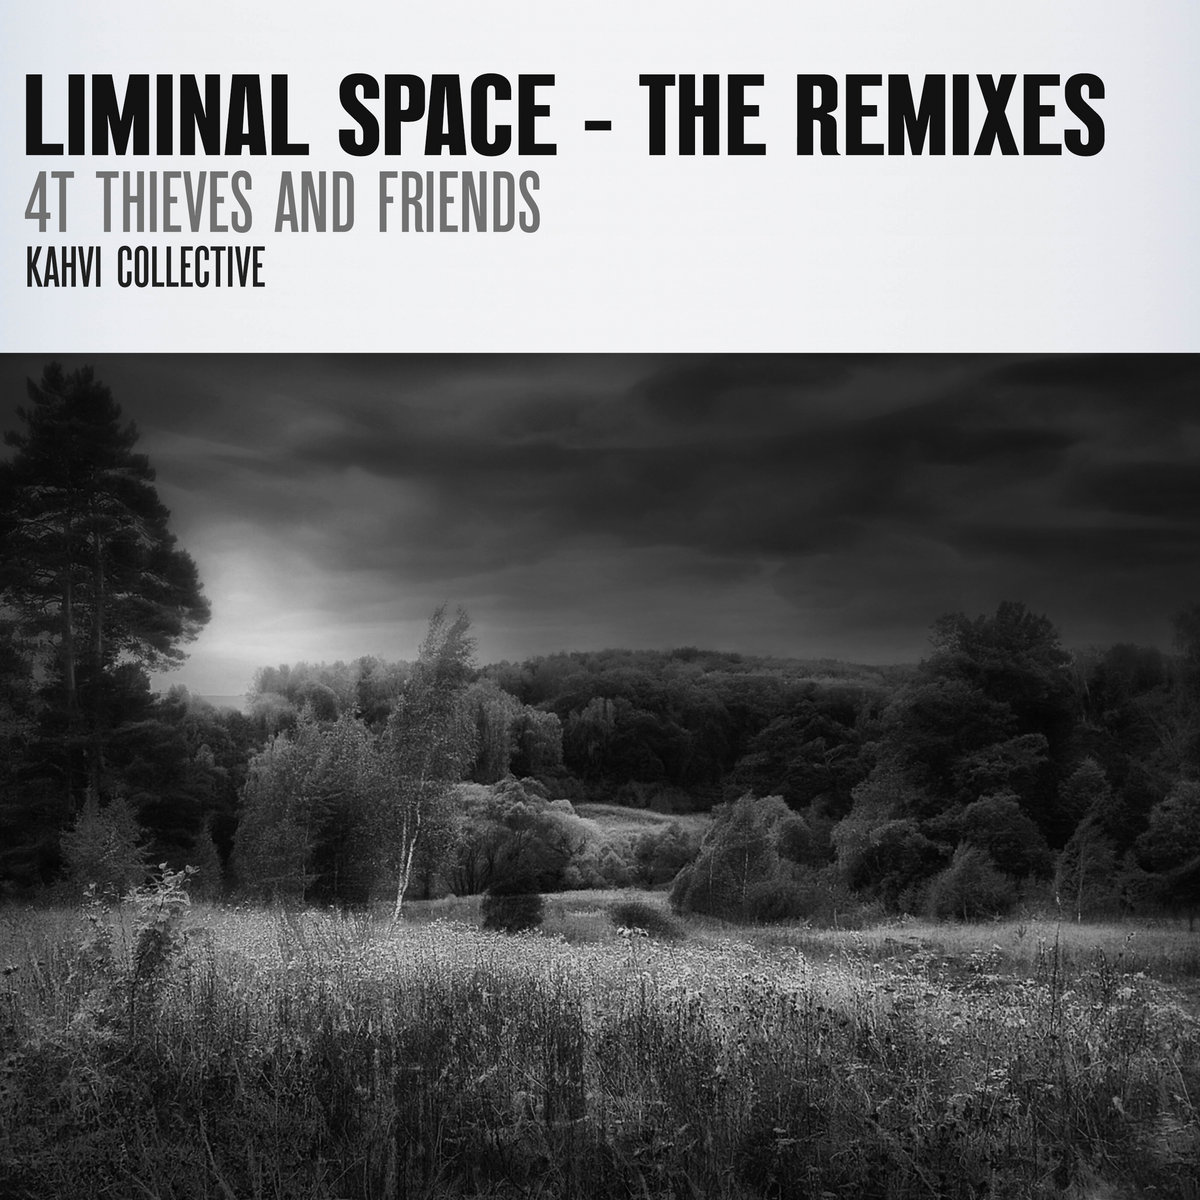 4T Thieves and Friends – Liminal Space – The Remixes